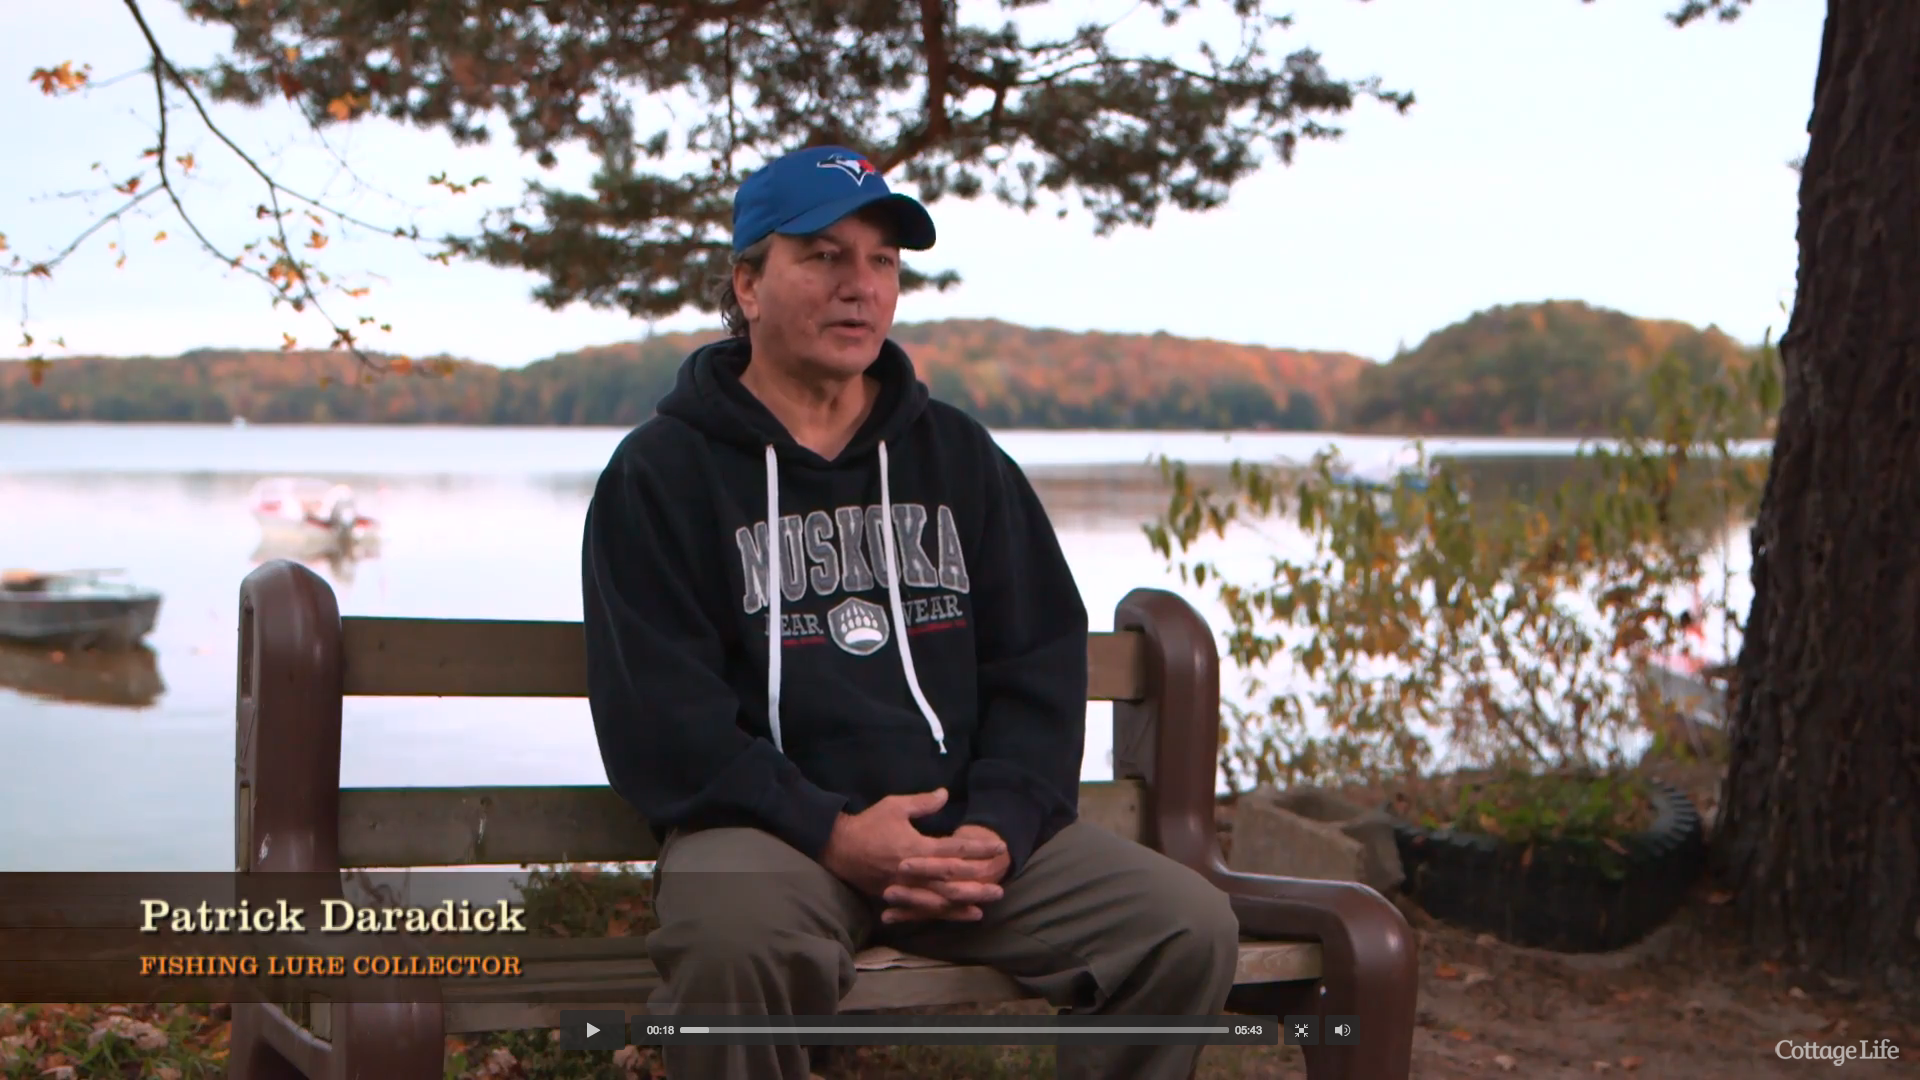 Patrick Daradick on Cottage Life Network